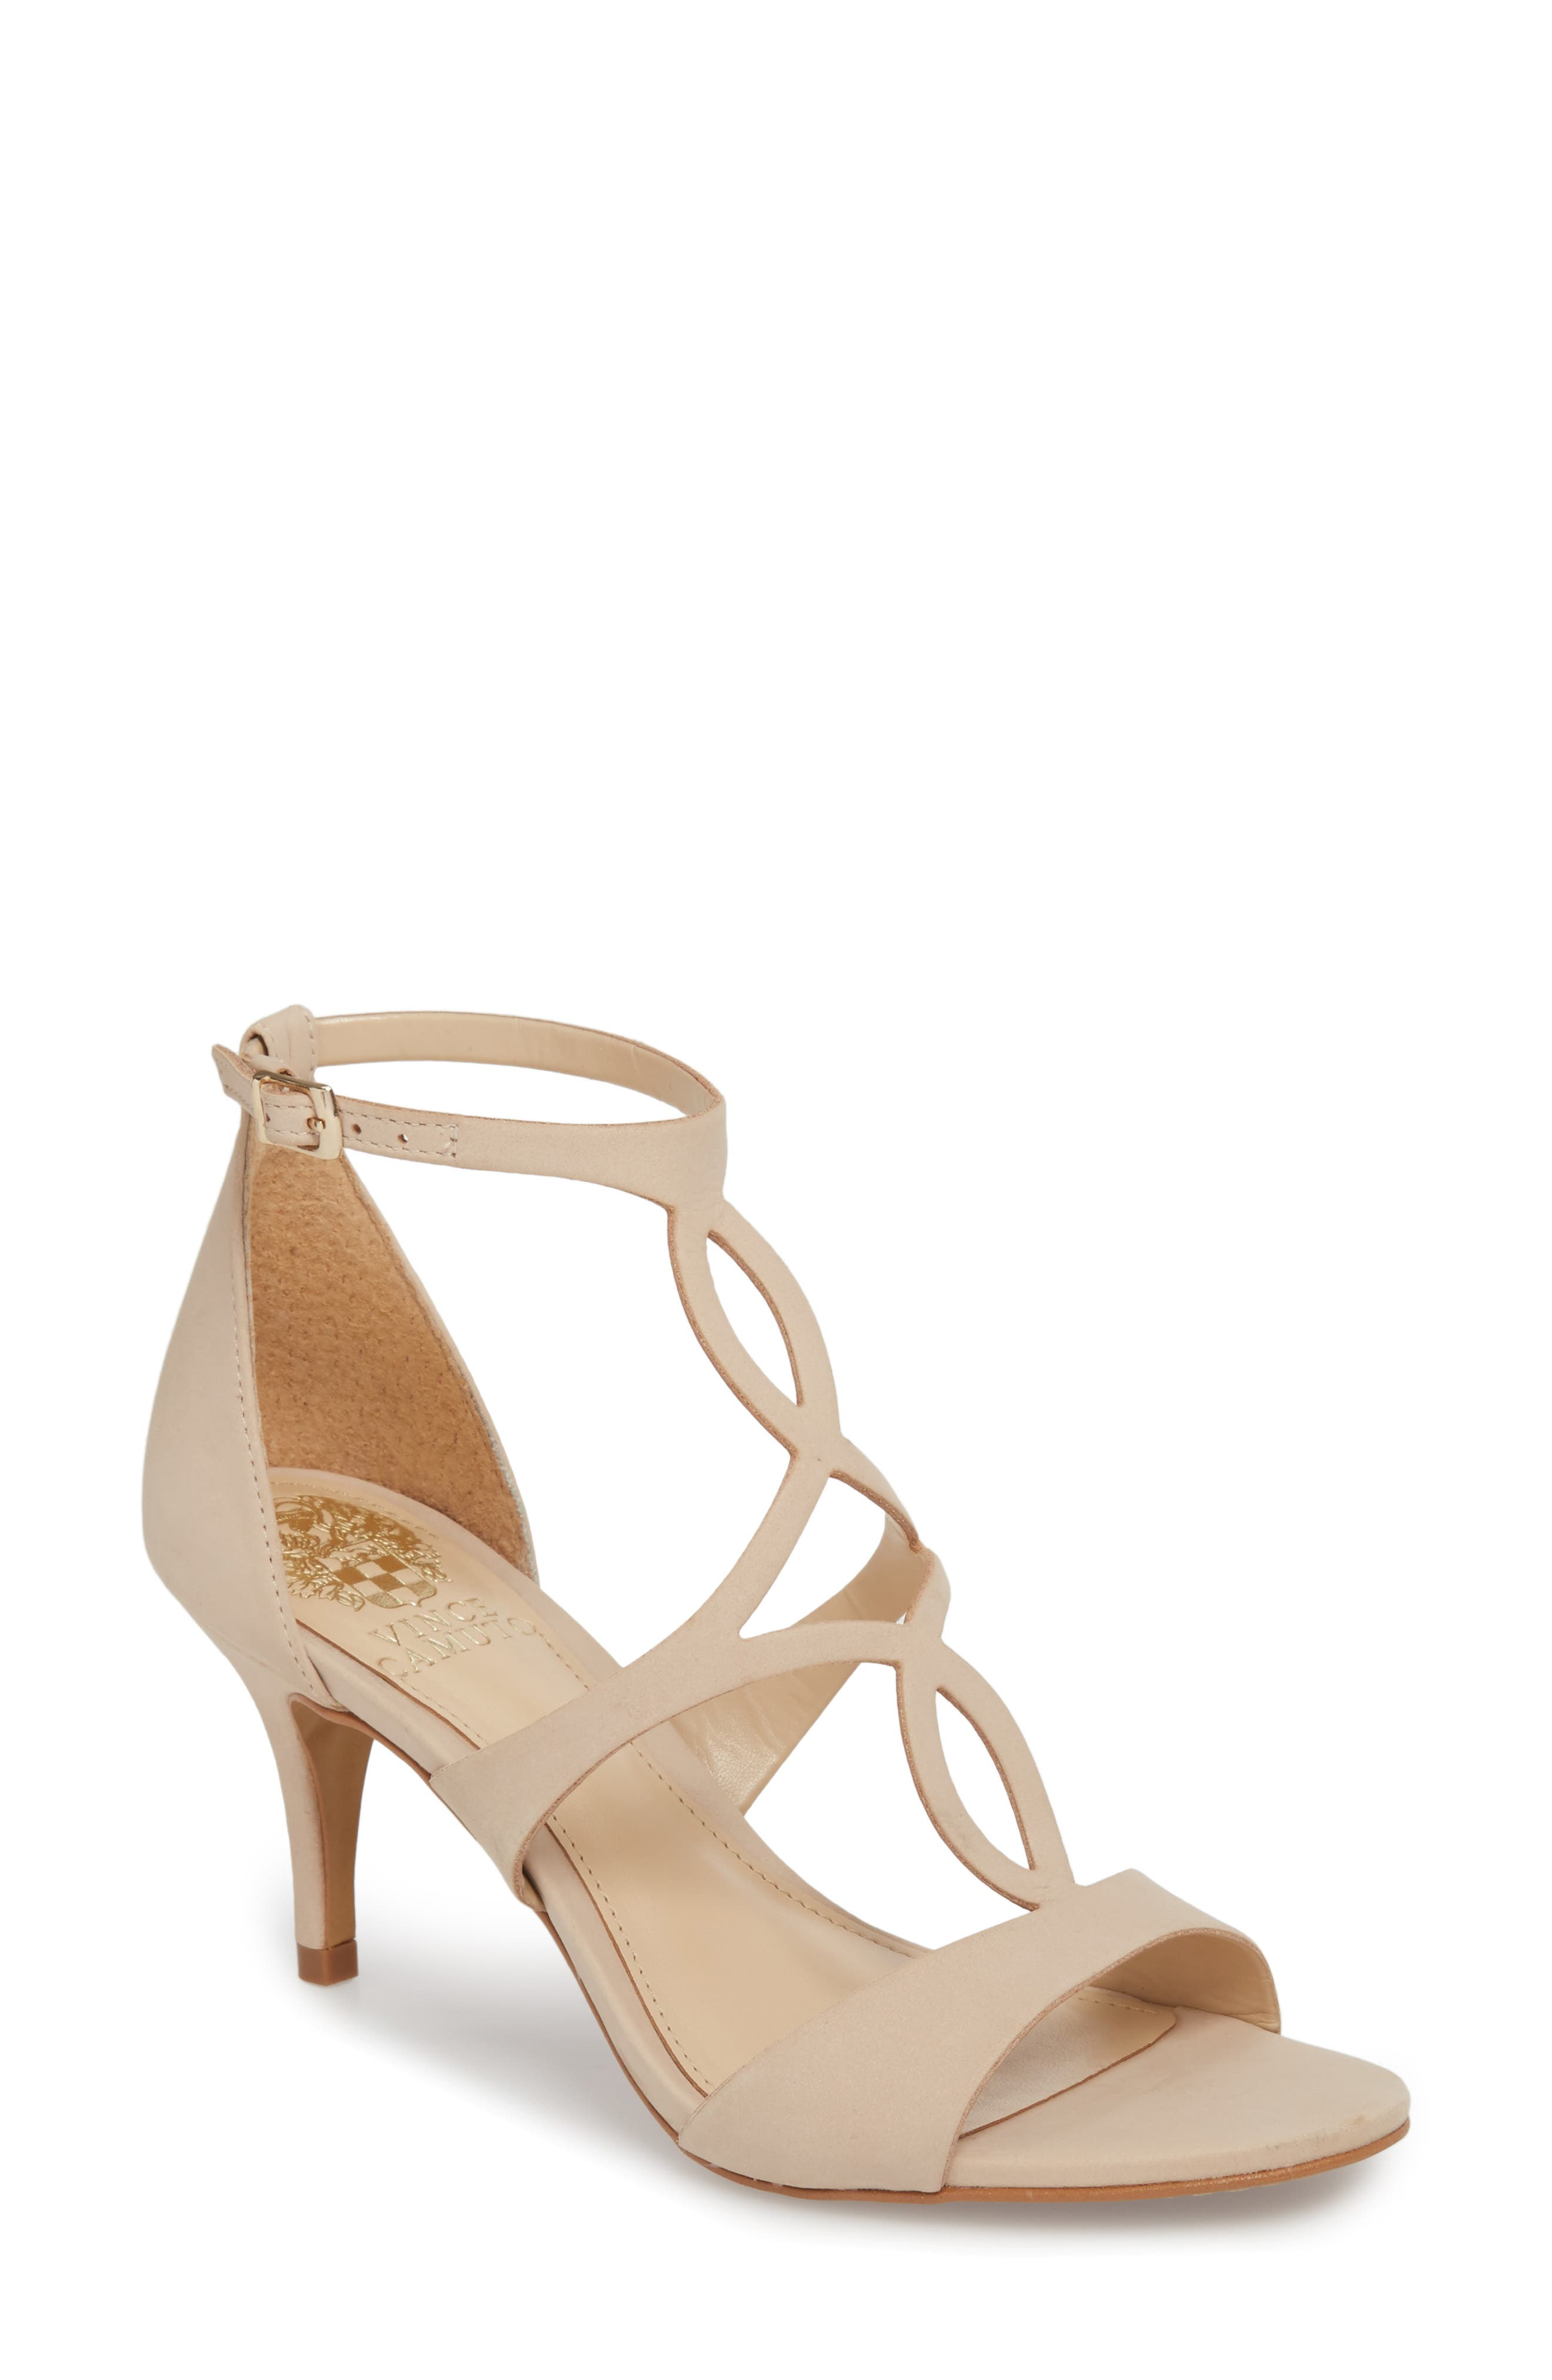 Payto Sandal,                         Main,                         color, NUDE LEATHER